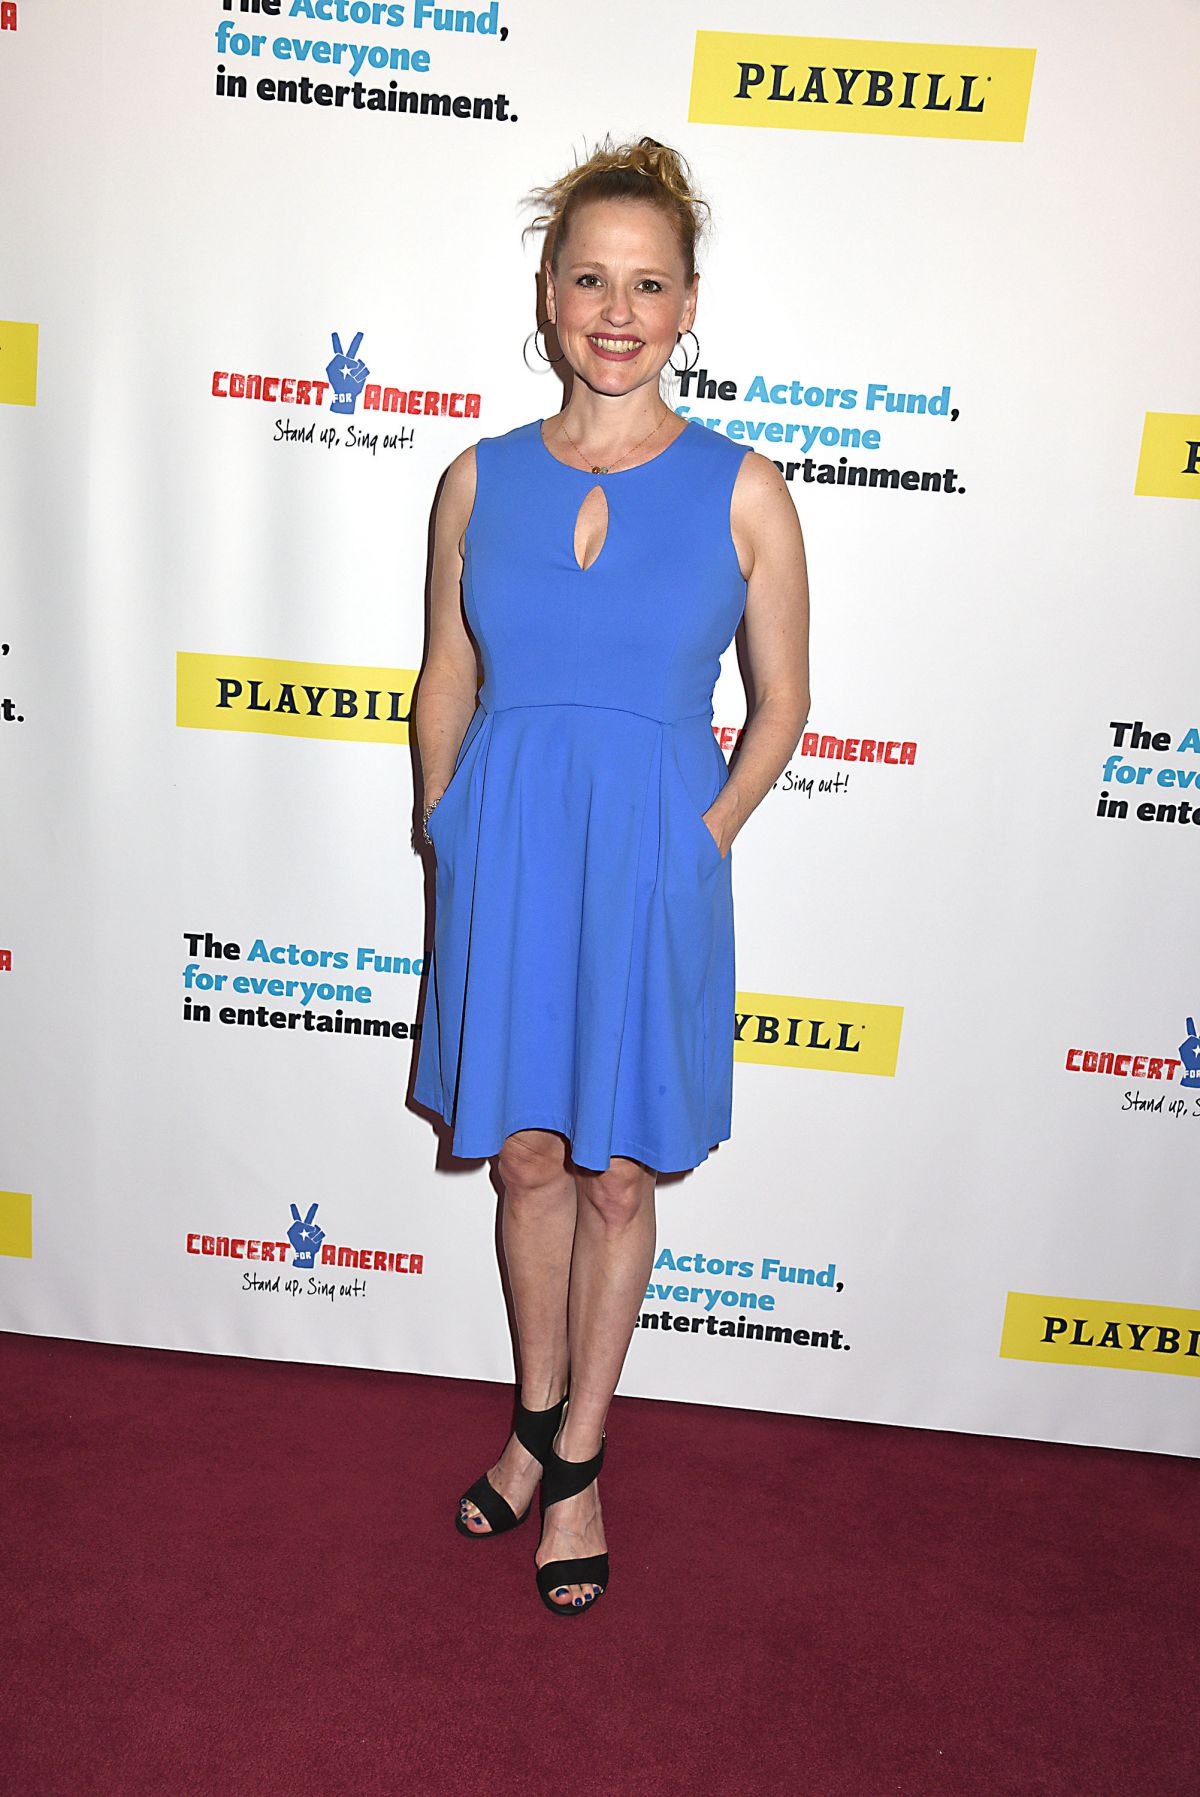 ANIKA LARSEN at Concert for America: Stand Up, Sing Out in New York 04/18/2017